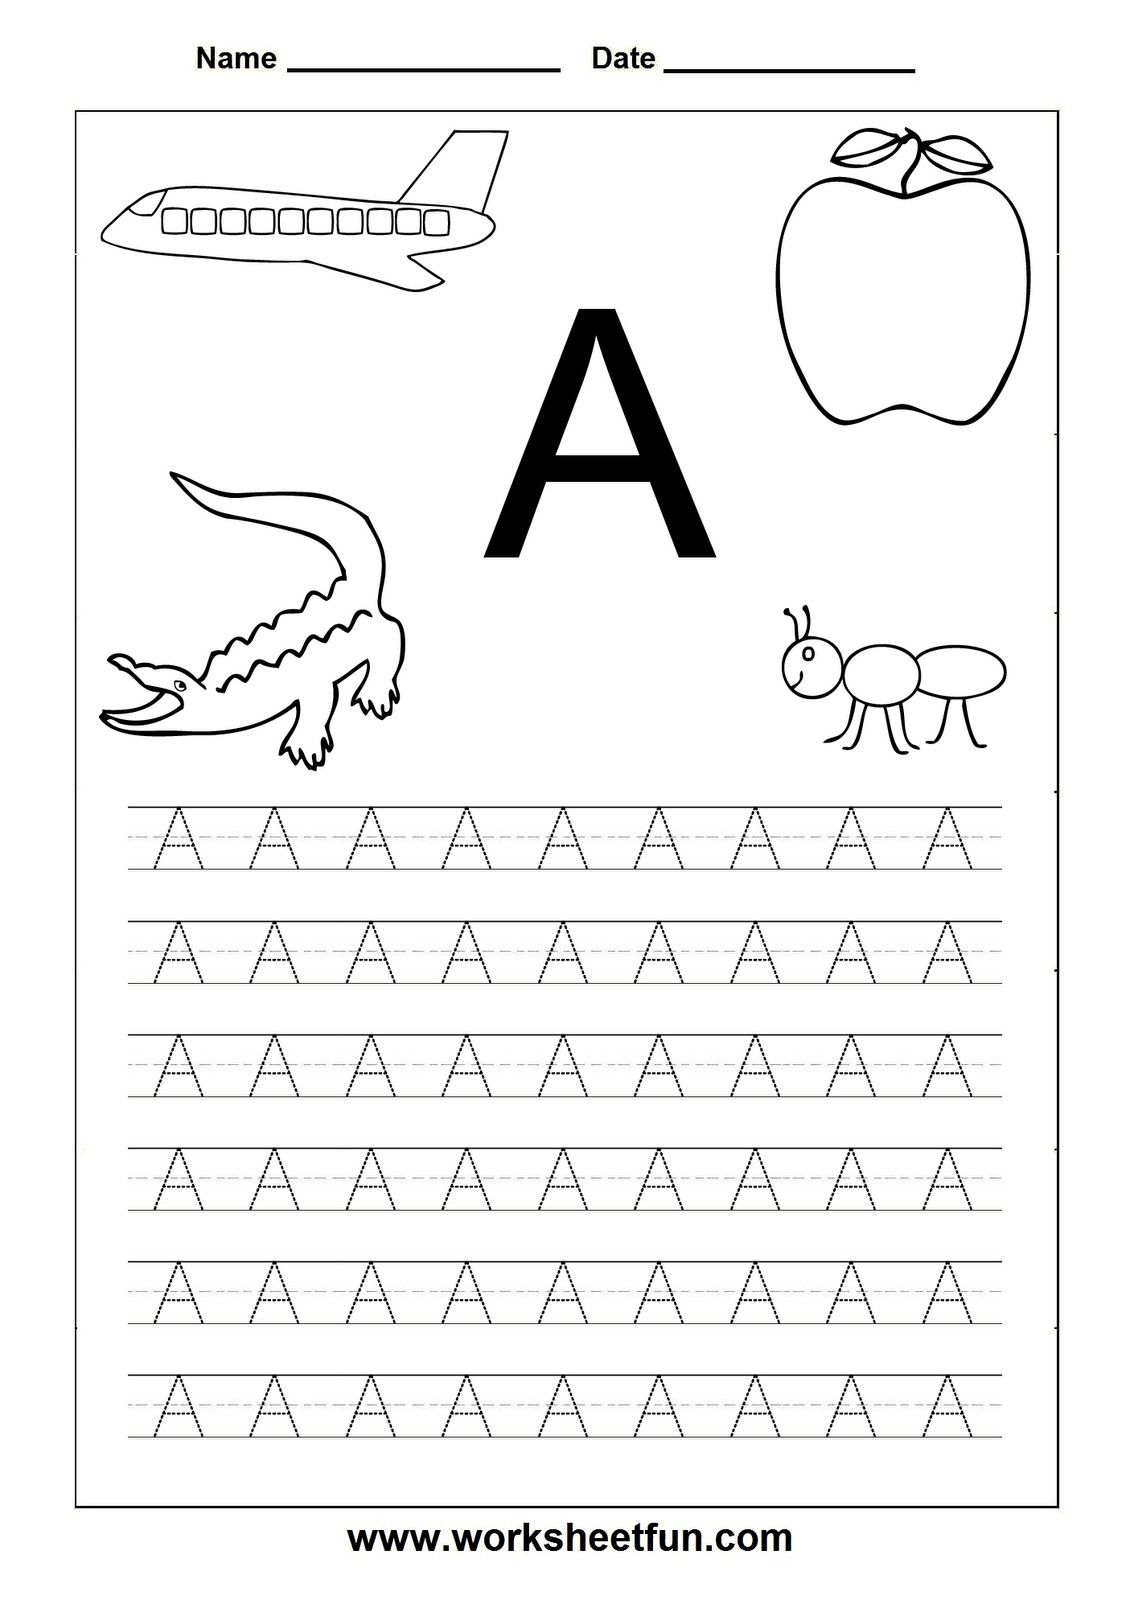 Printable Letters For Preschoolers - Paul's House | Alphabet intended for Alphabet Tracing A